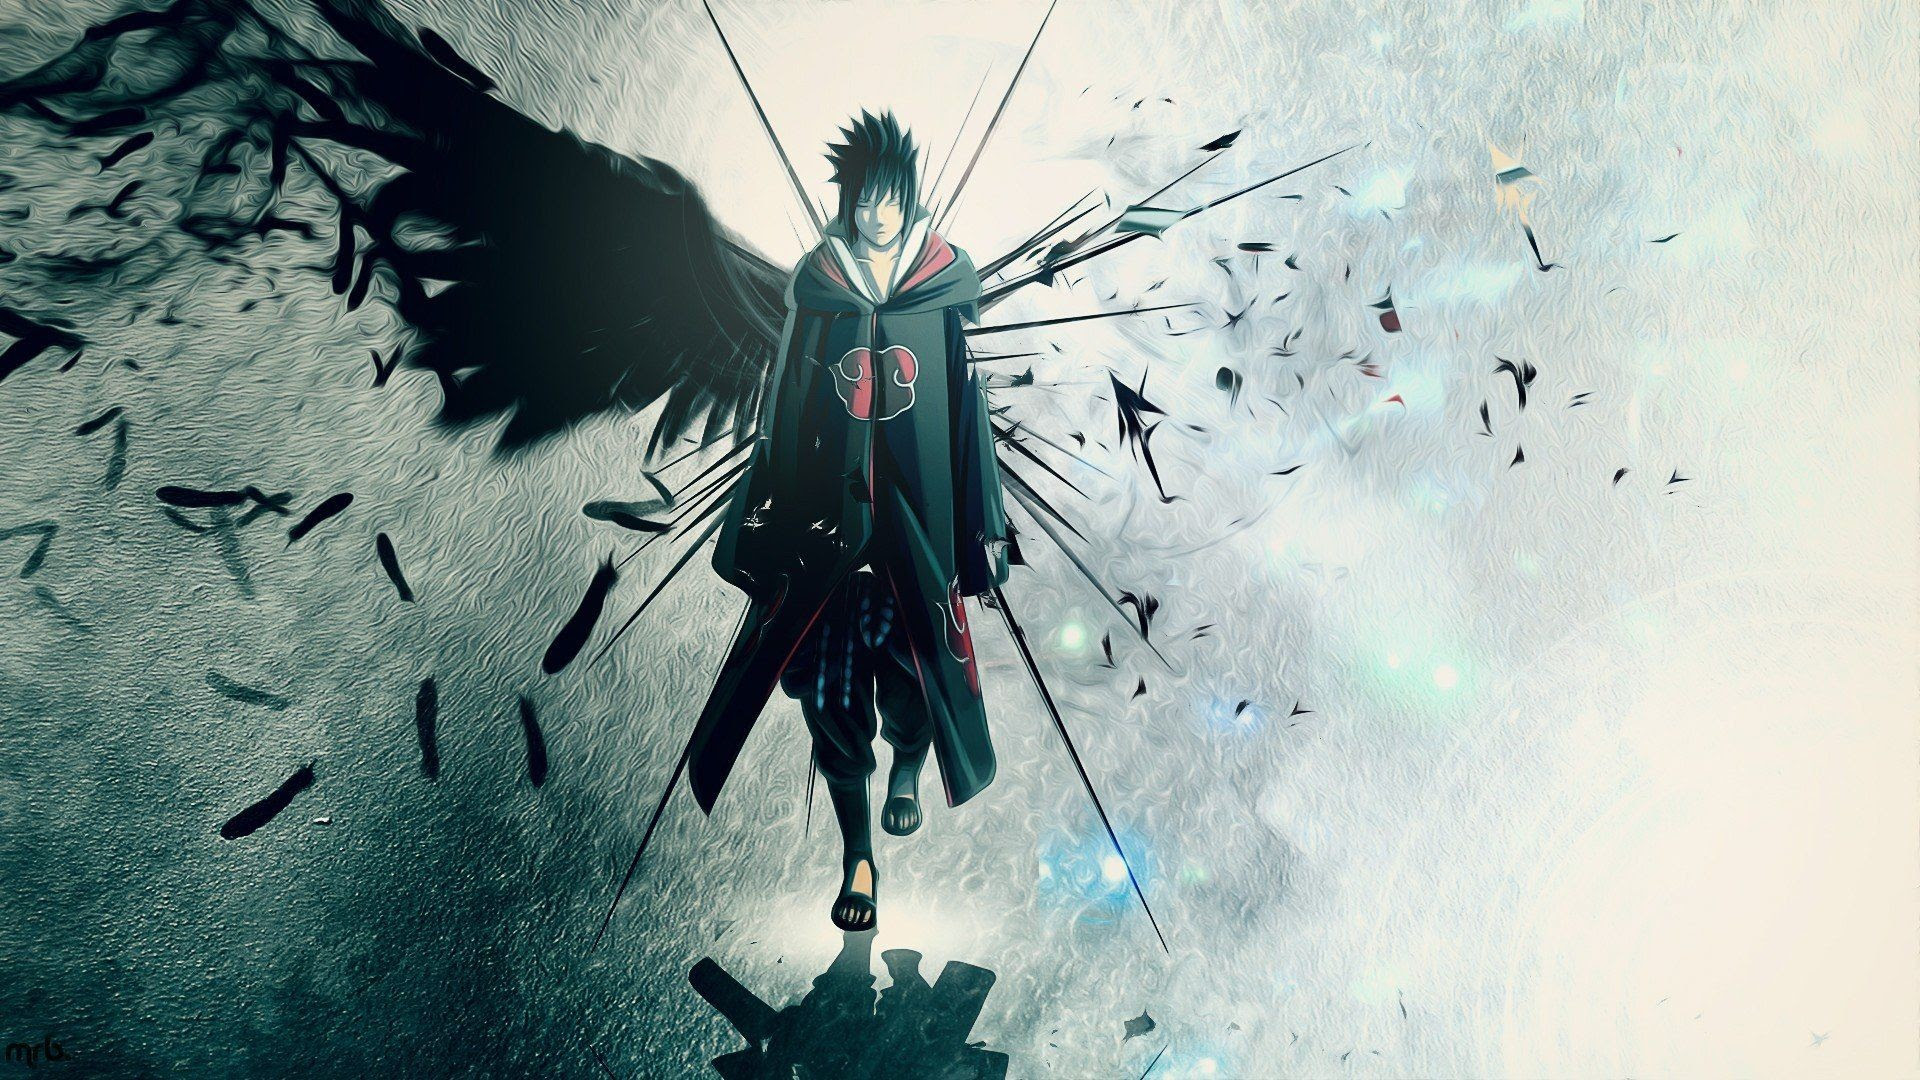 Anime Wallpaper 1366x768 (67+ images)